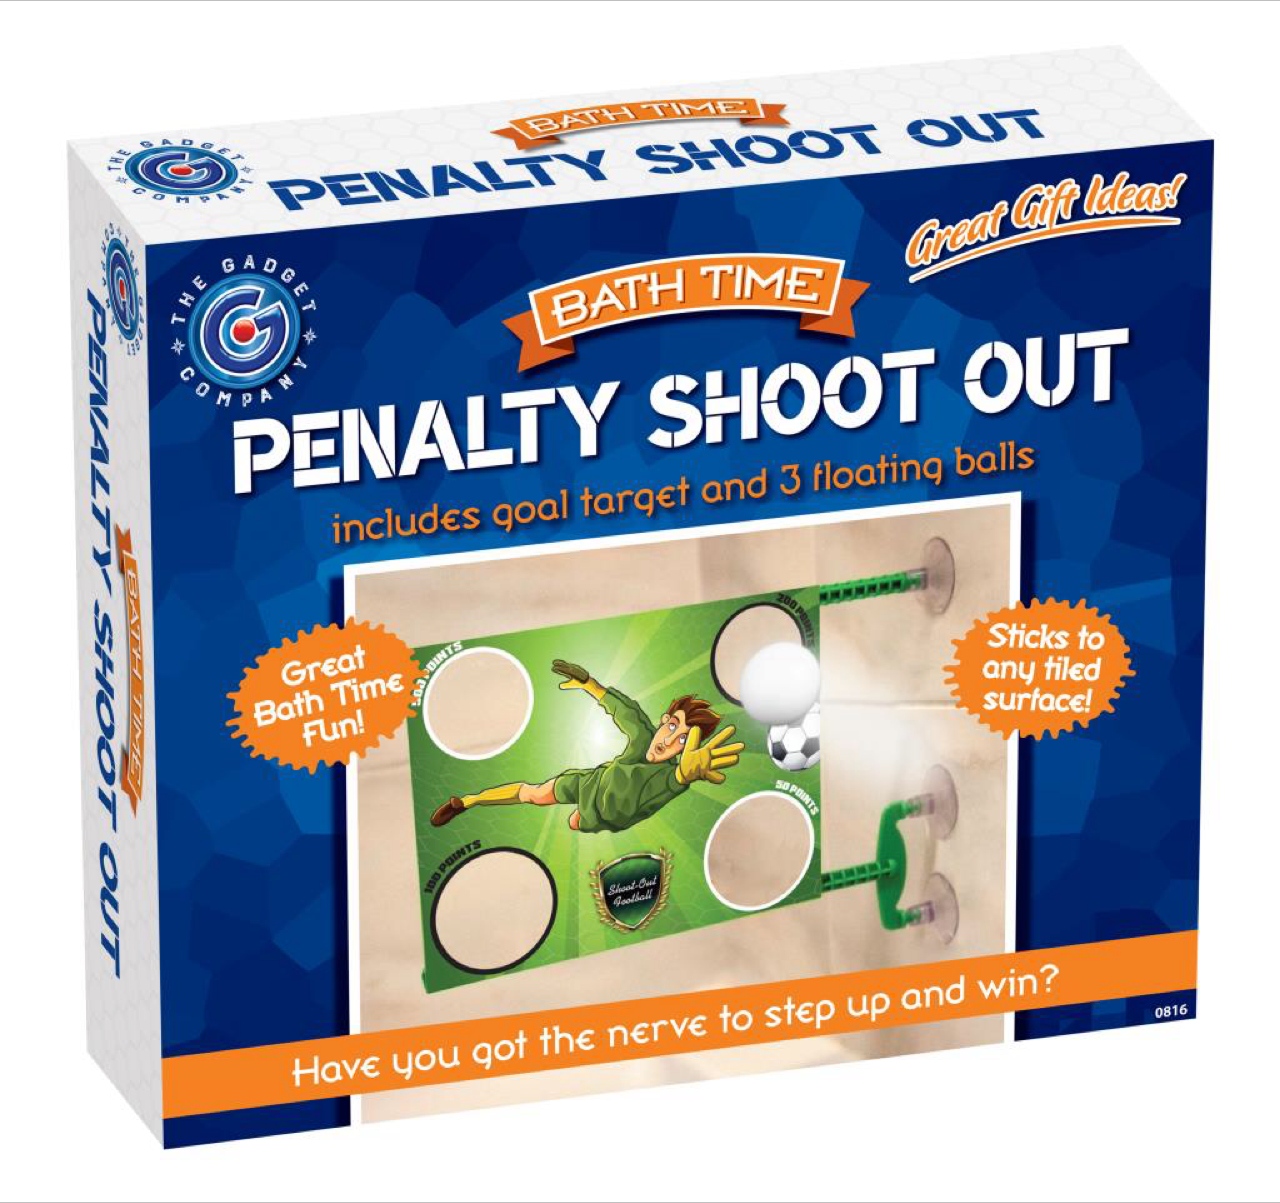 Bath Penalty Shoot Out